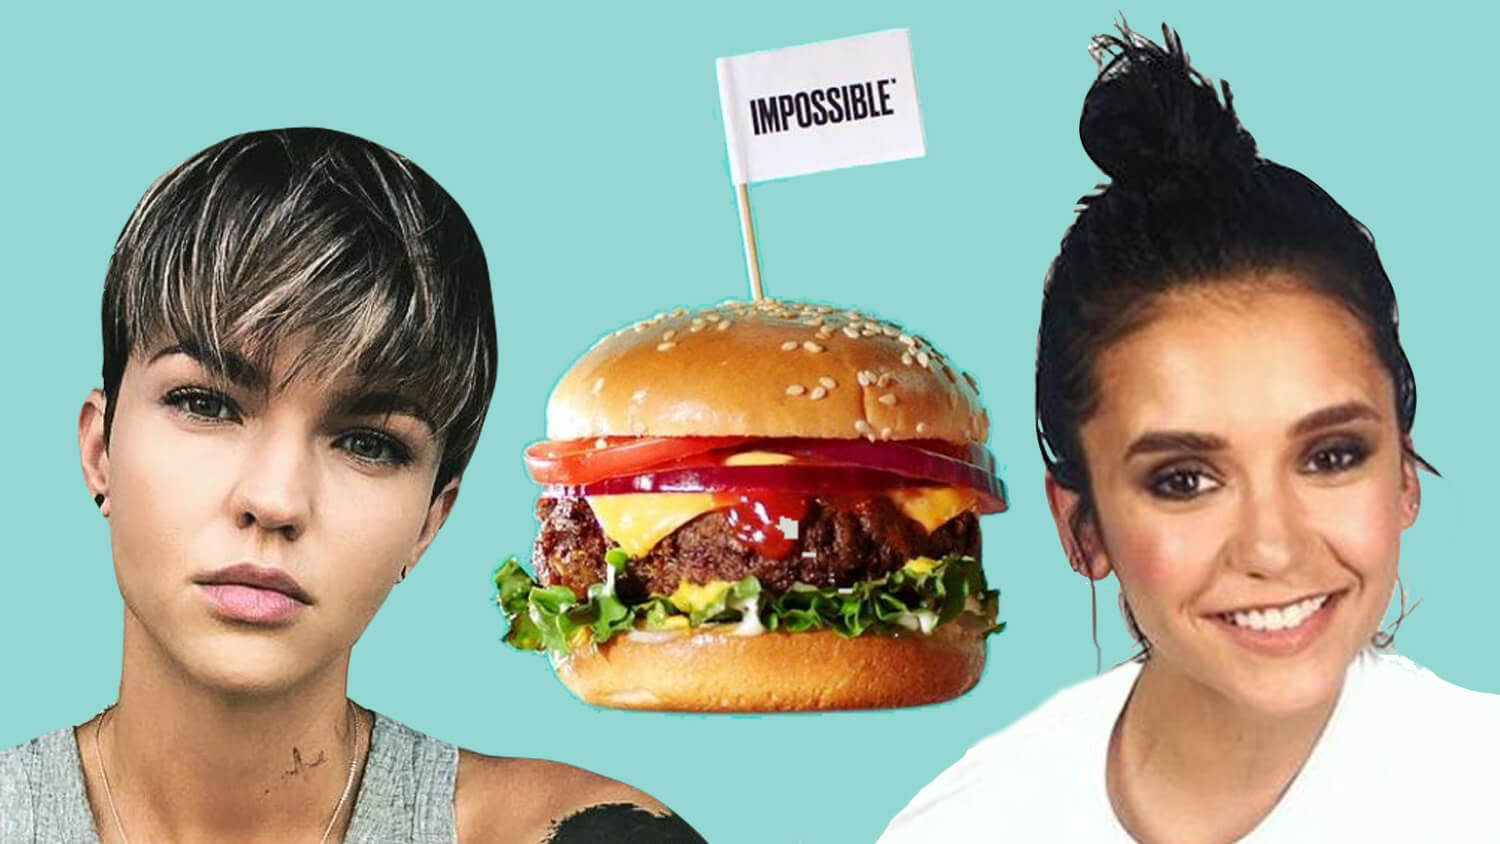 Nina Dobrev Trying to Go Vegan After Eating Impossible Burgers From Ruby Rose